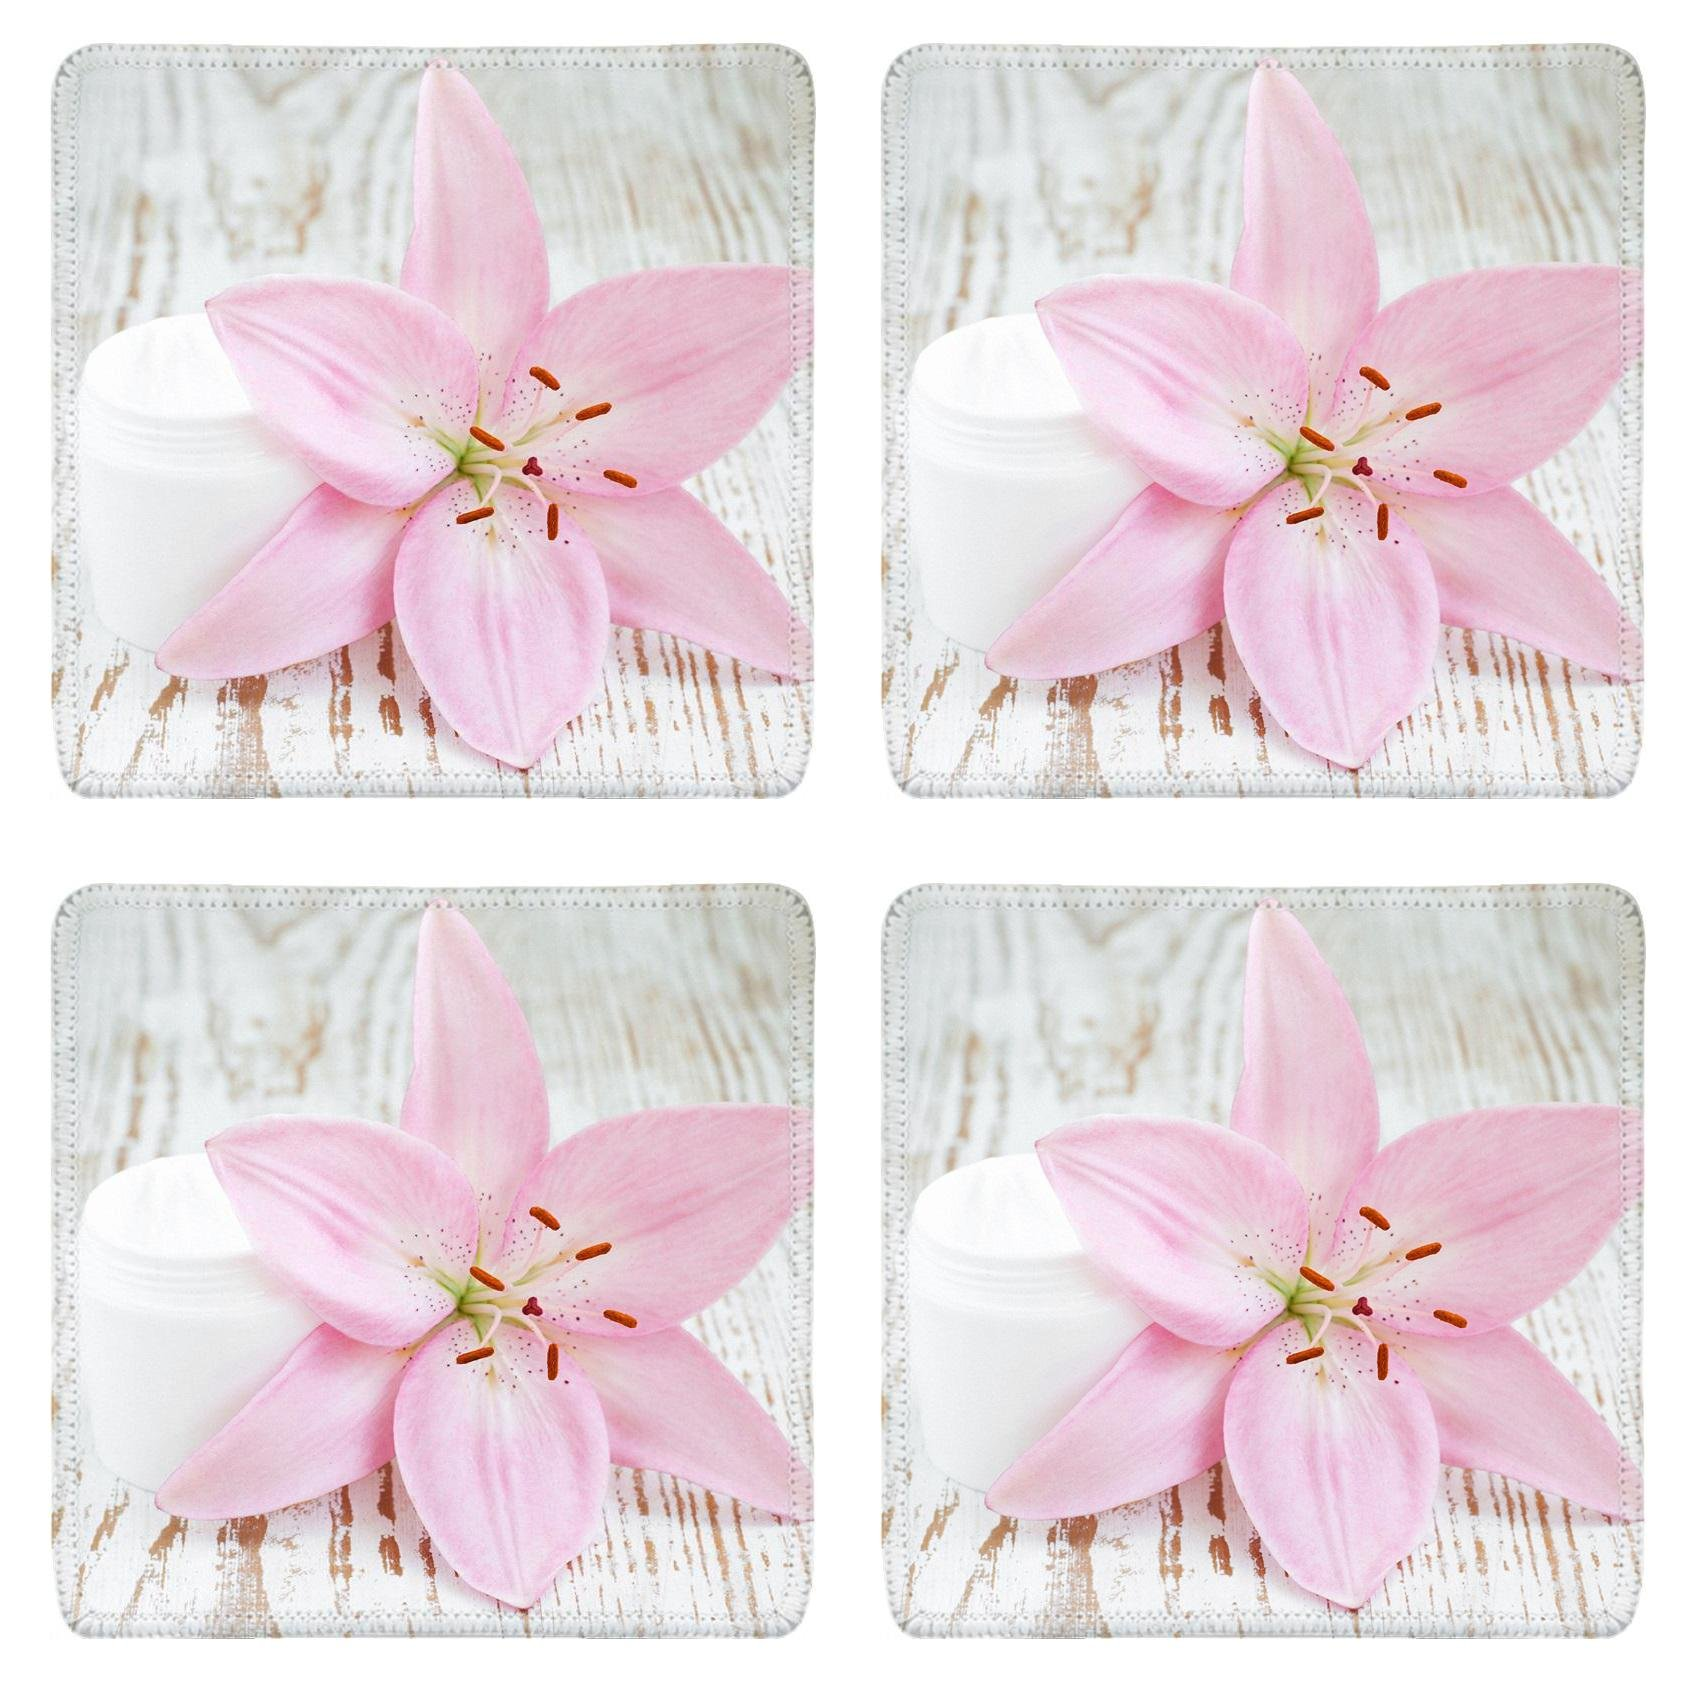 MSD Square Coasters Non-Slip Natural Rubber Desk Coasters design 24610523 Wellness and spa scene with lily and beauty cream